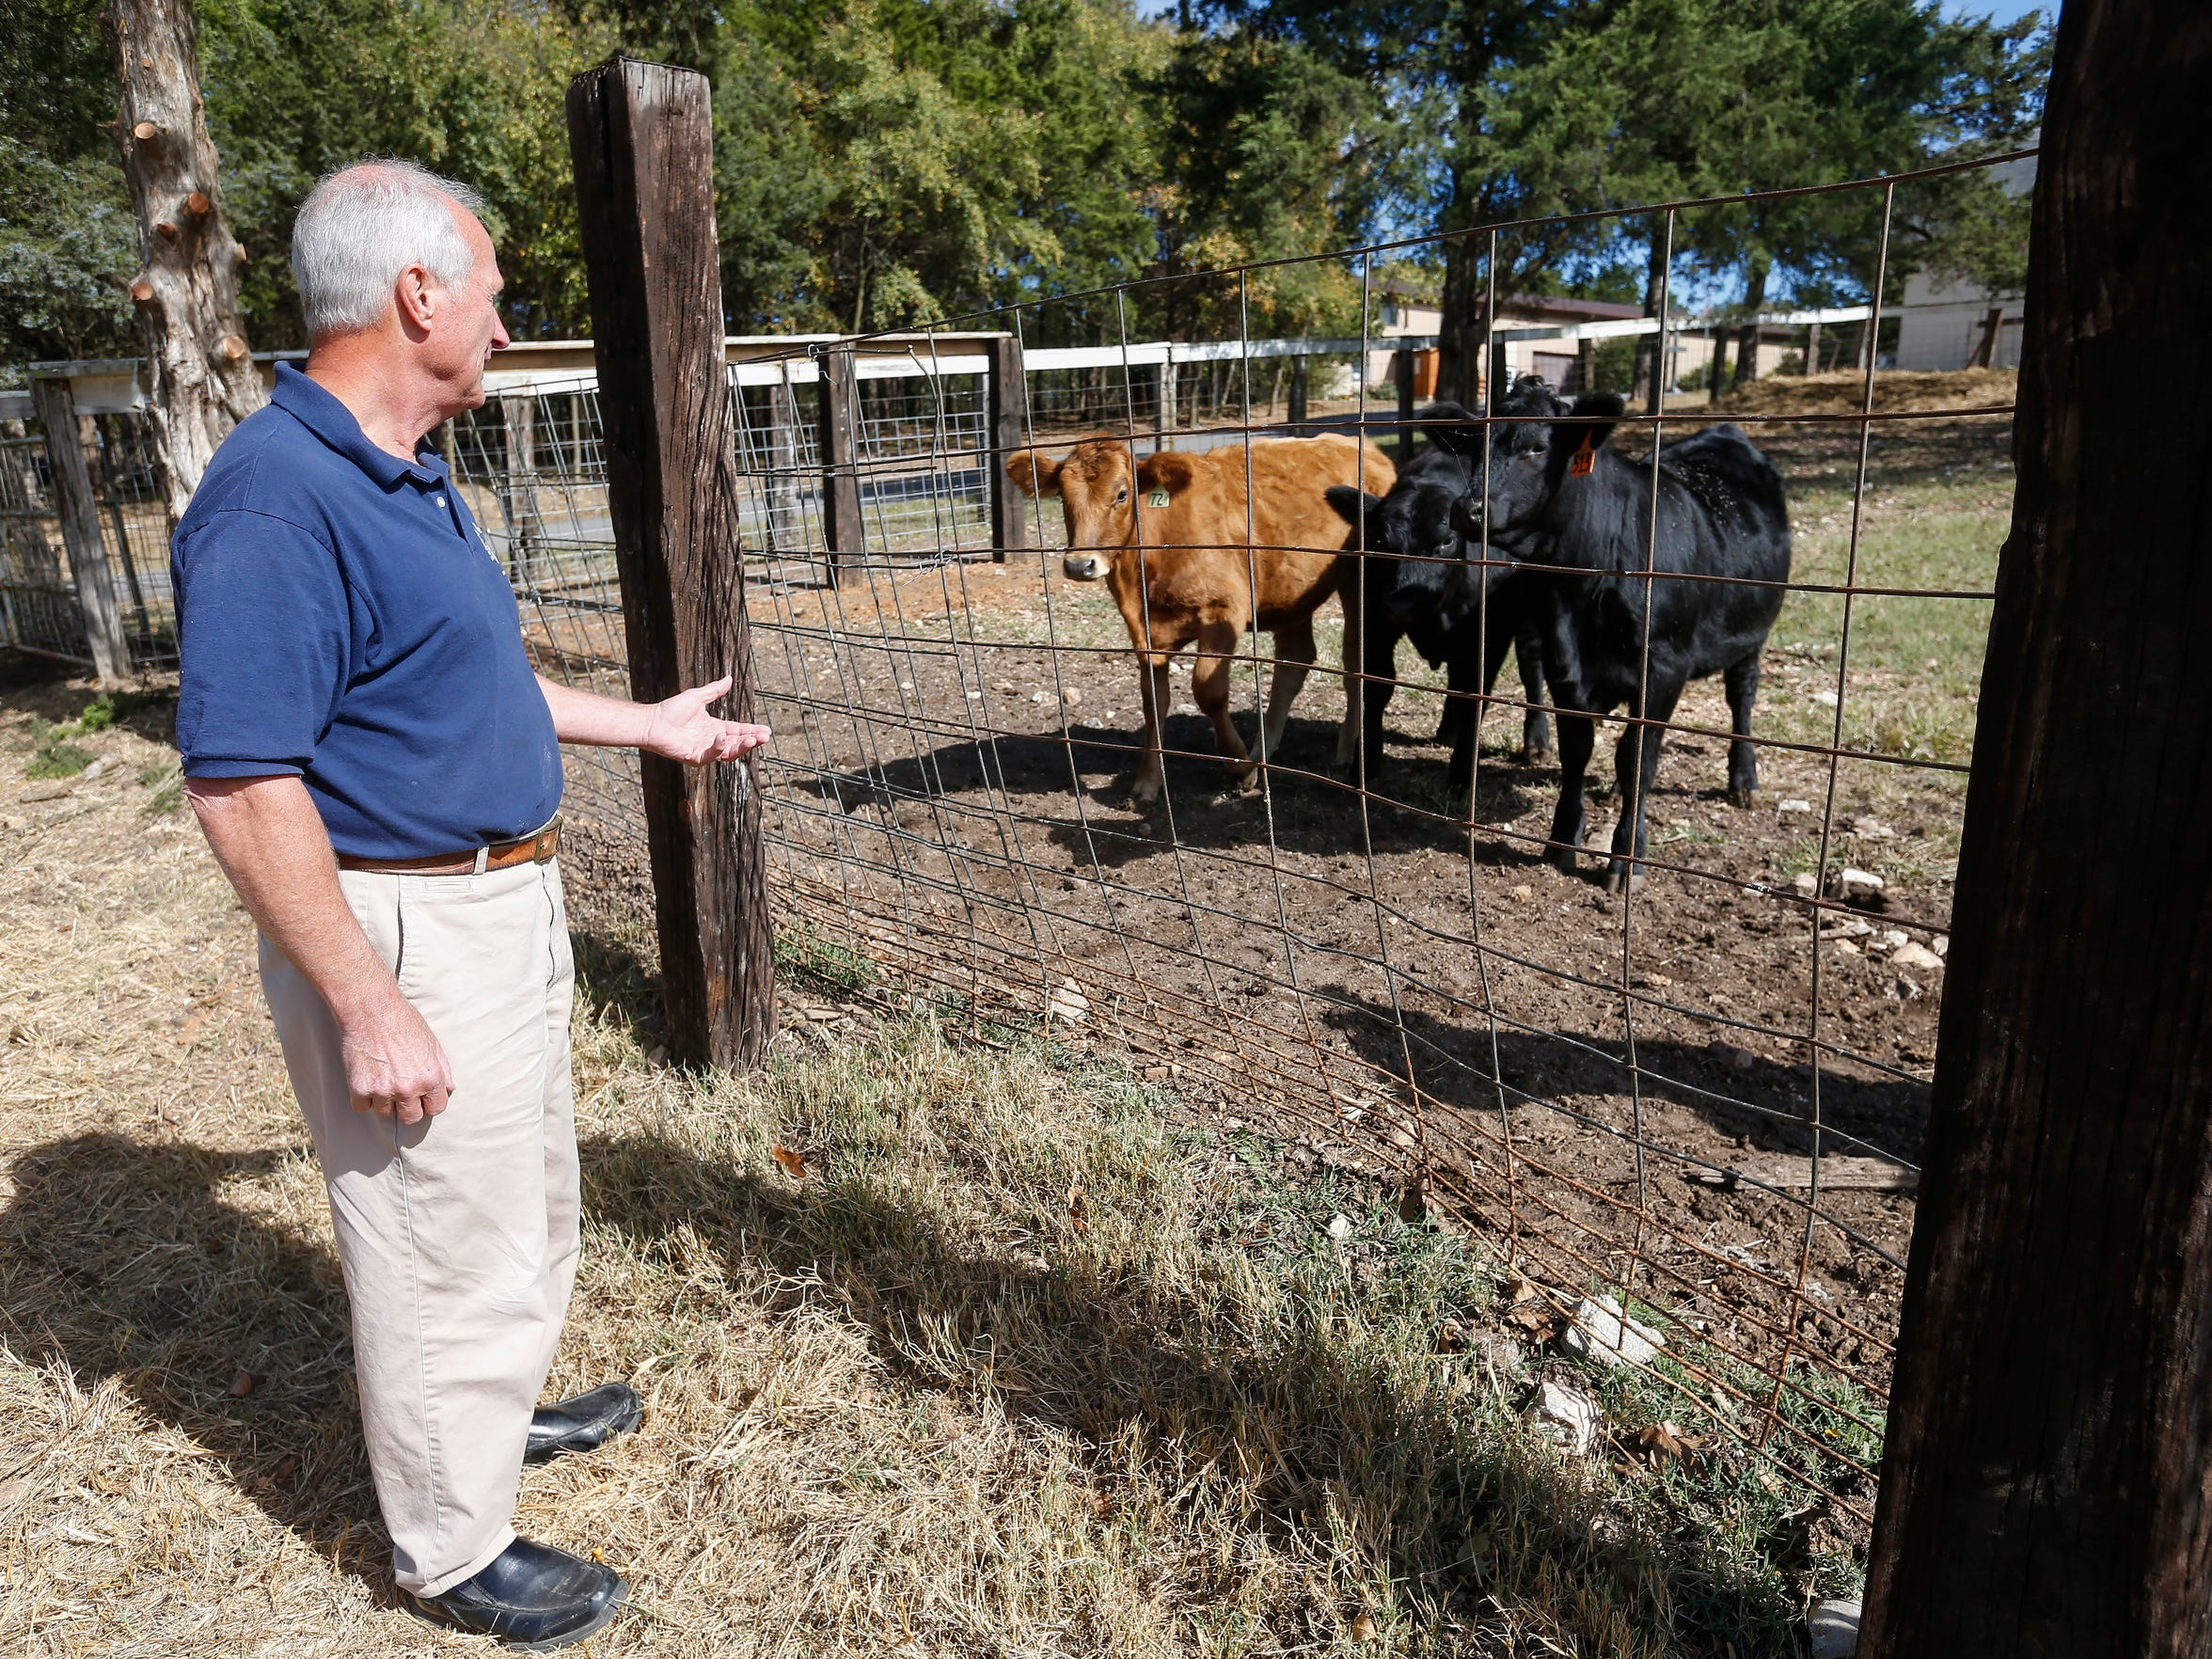 Ken Ortman tries to get a group of cows to come to